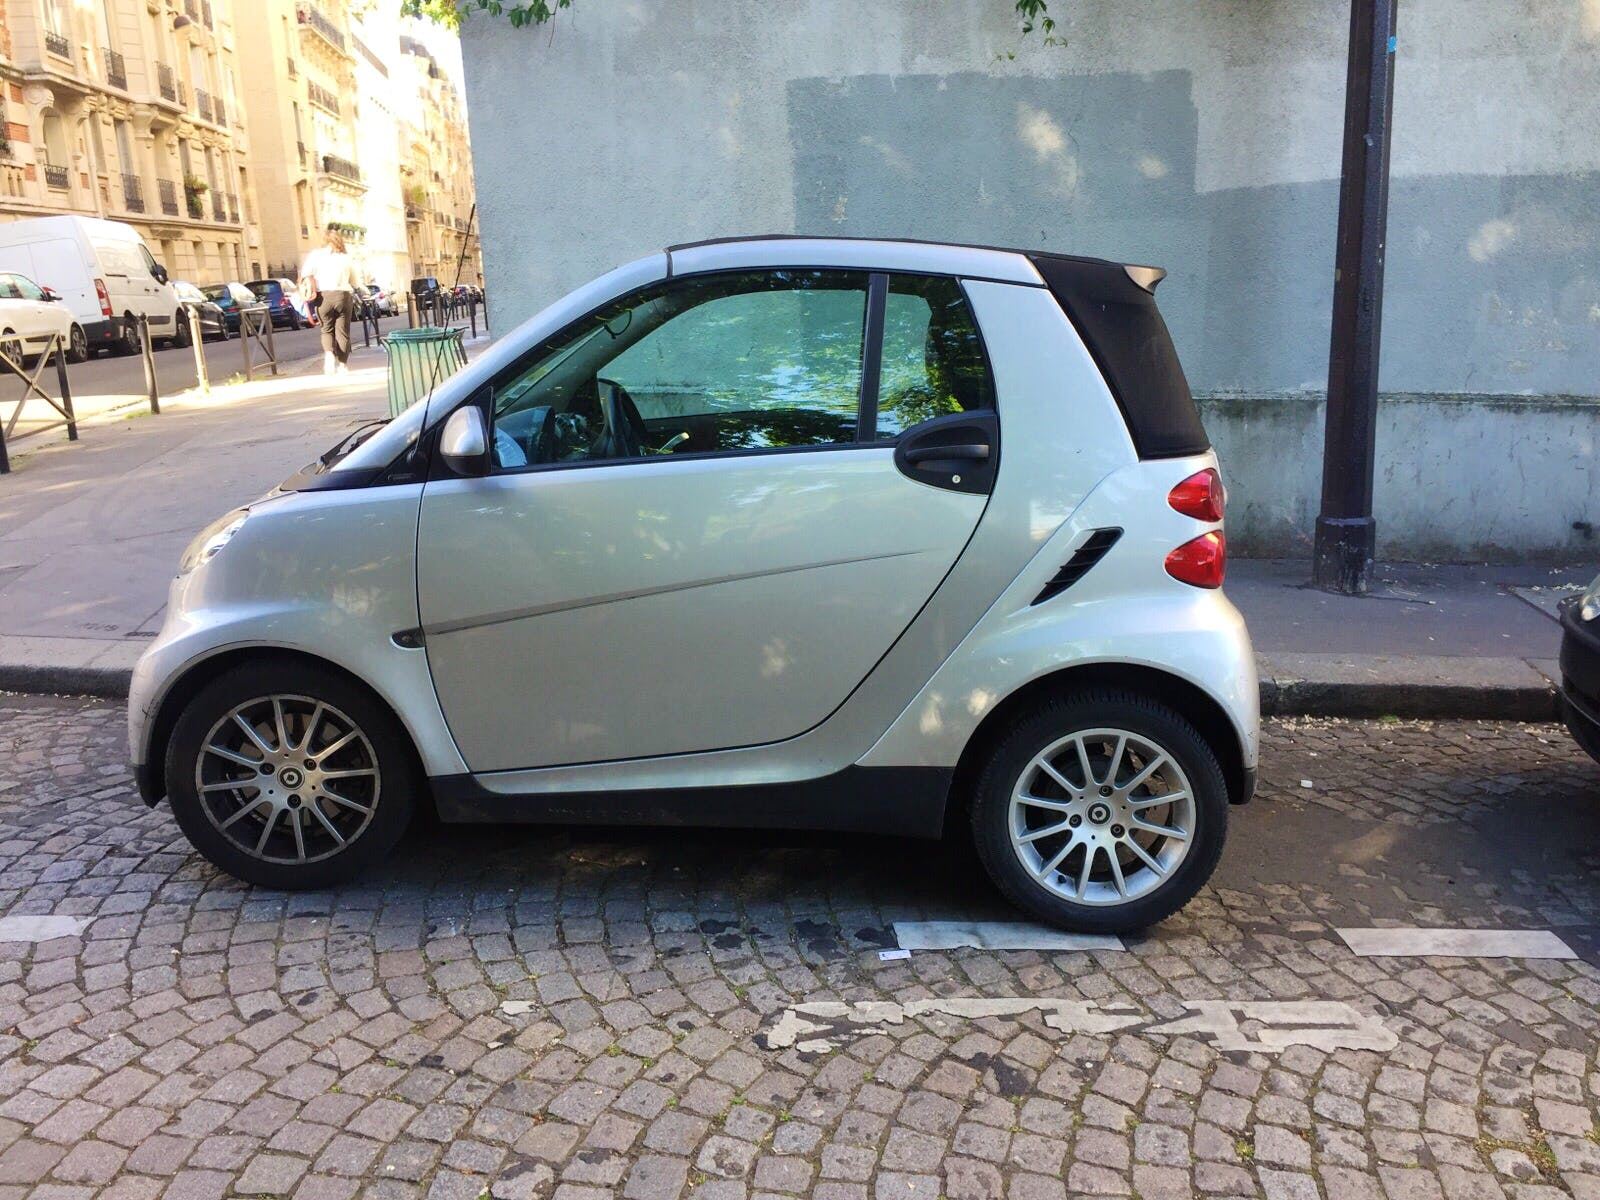 Smart Fortwo Cabriolet 71ch Passion (clim, Jack,...) PARIS 13 - SAINT JACQUES #aq avec Entrée audio / iPod